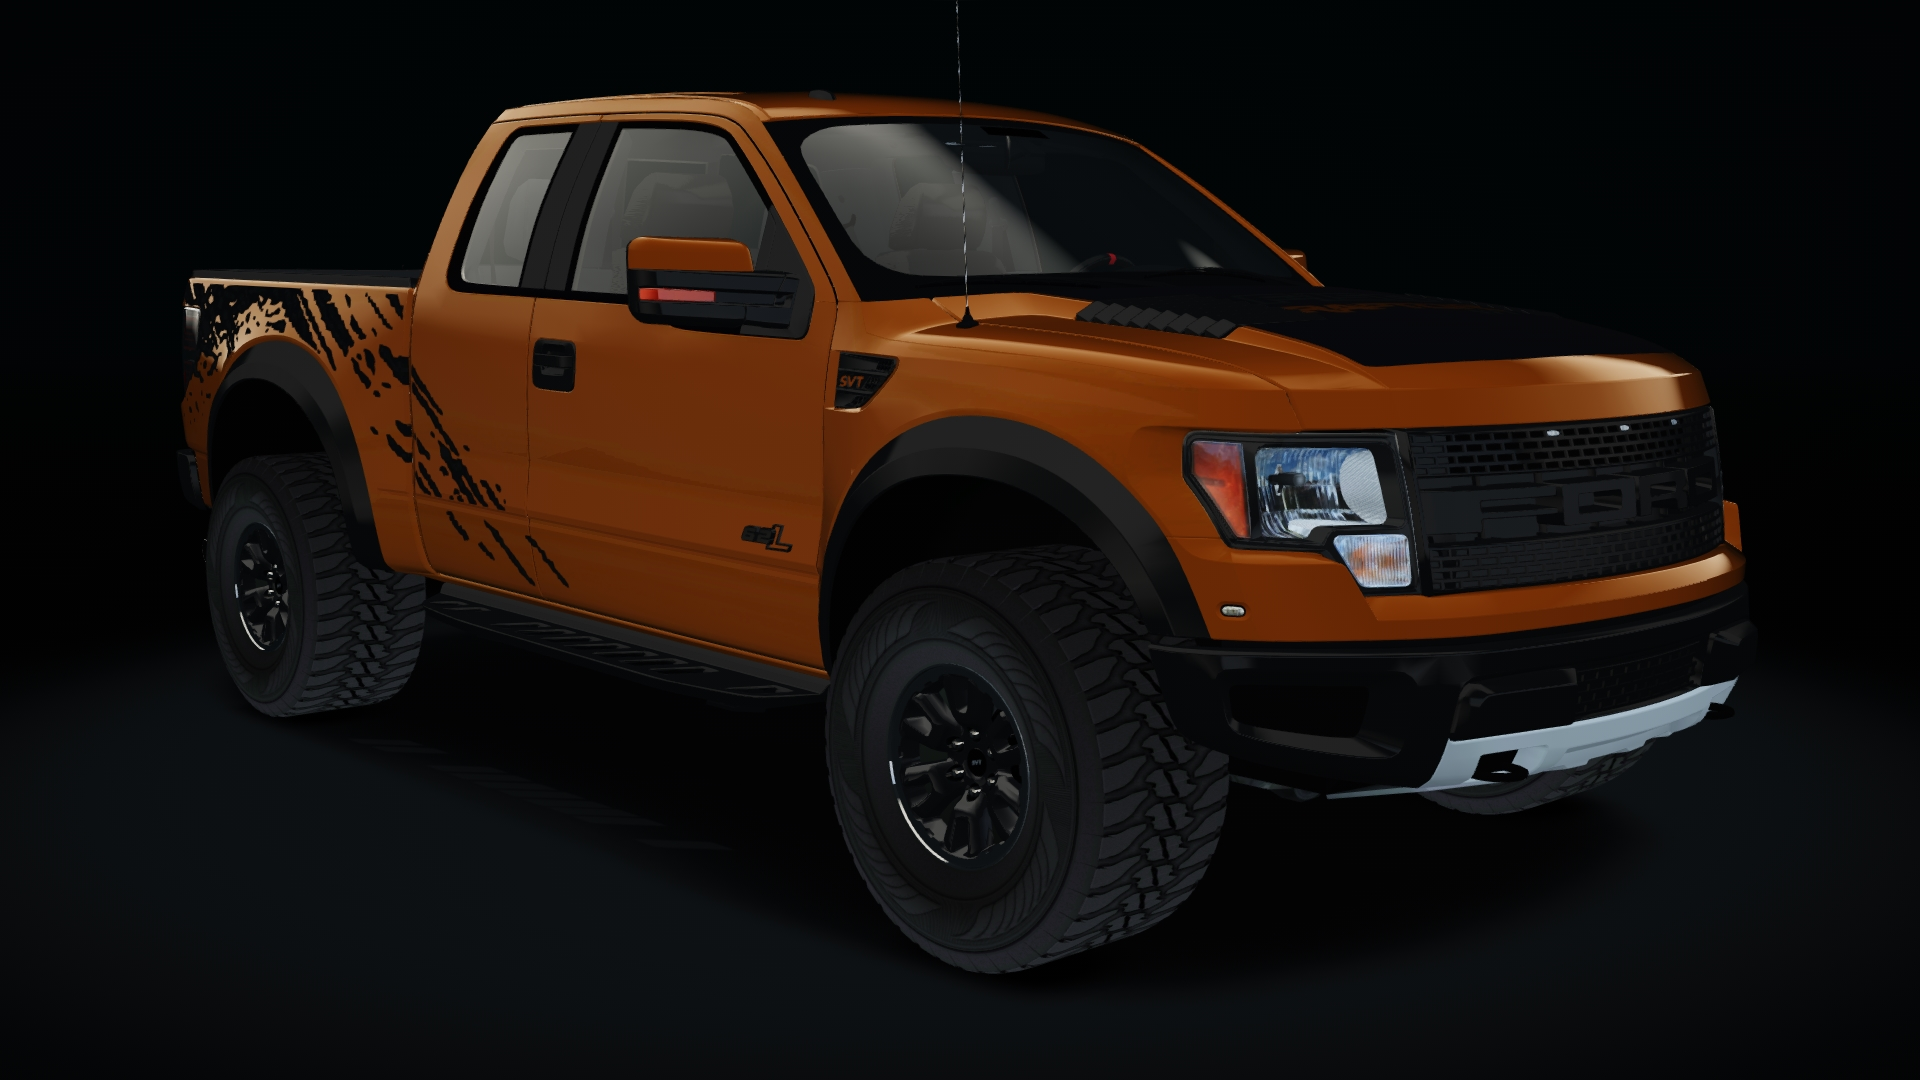 F150 Off Road >> Ford F-150 SVT Raptor 2011 - Ford - Car Detail - Assetto ...